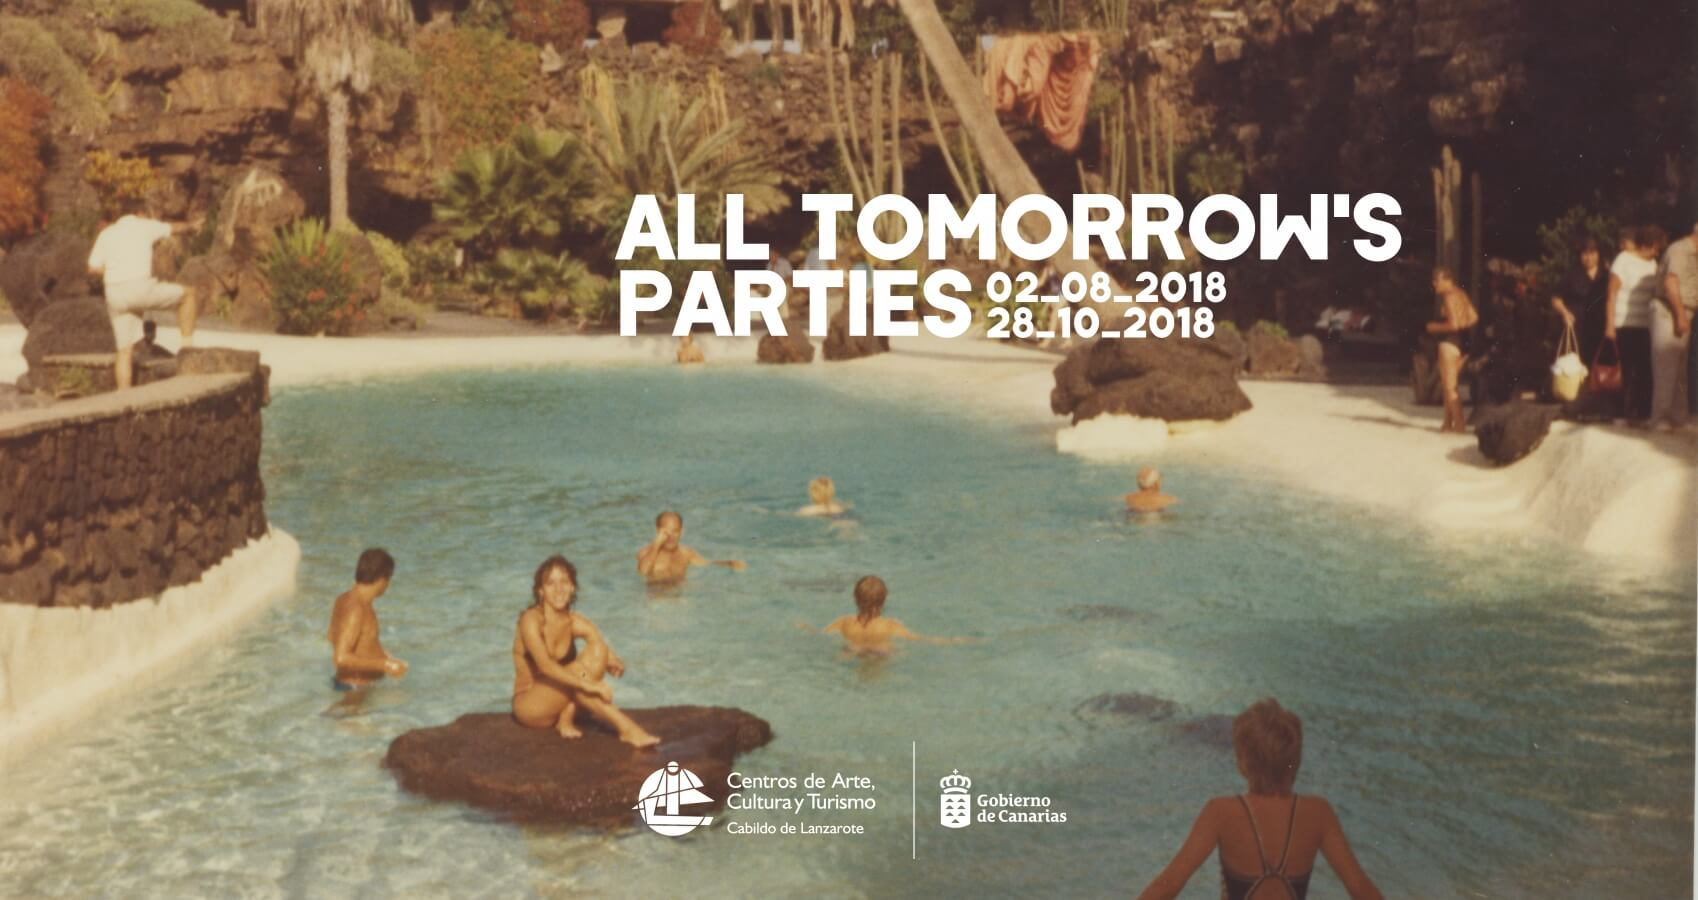 All Tomorrow´s parties